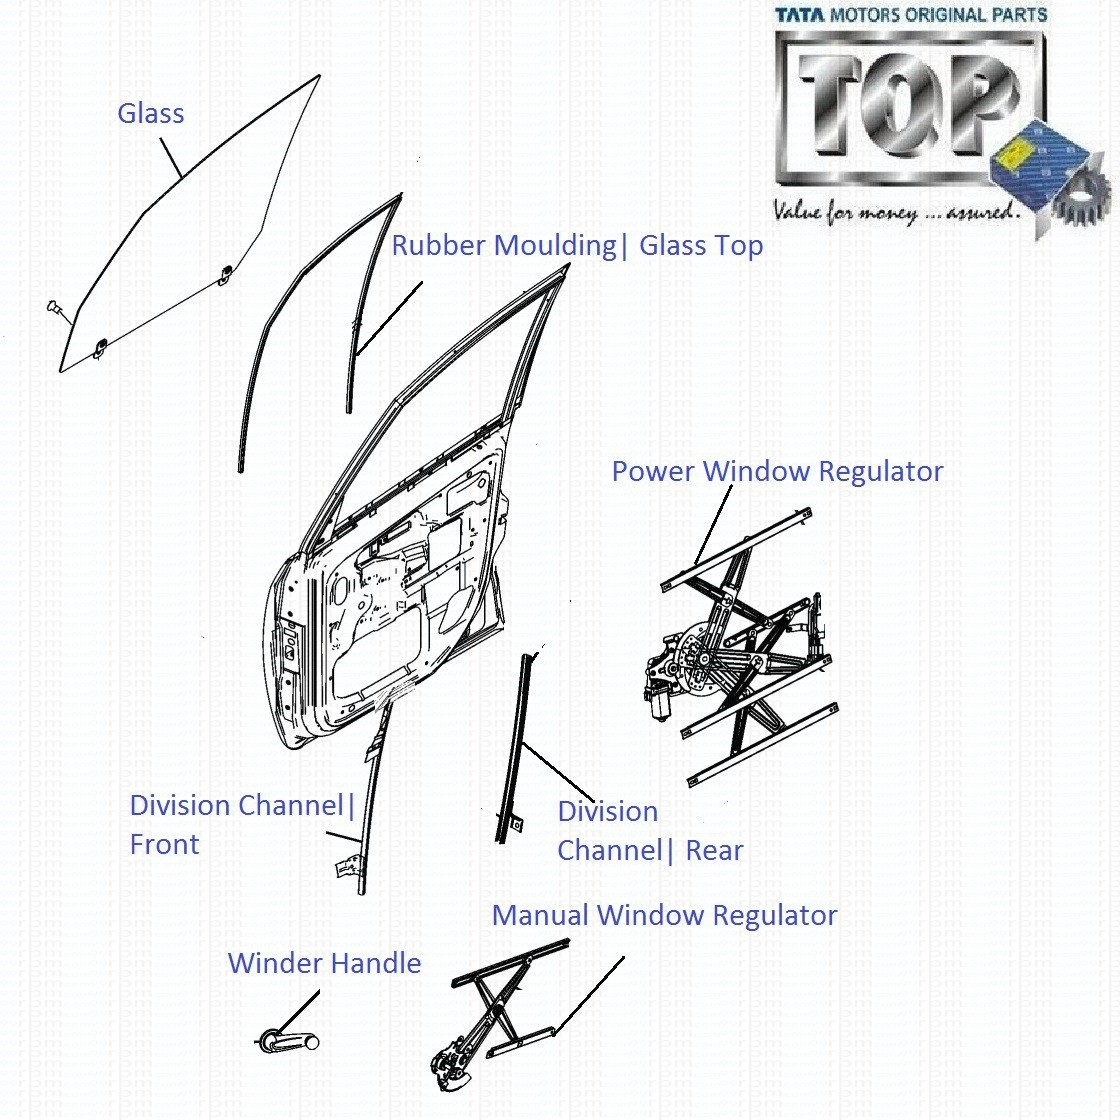 Tata nano wiring diagram ppt wiring diagram sierramichelsslettvet tata nano electrical wiring diagram and schematic asfbconference2016 Choice Image